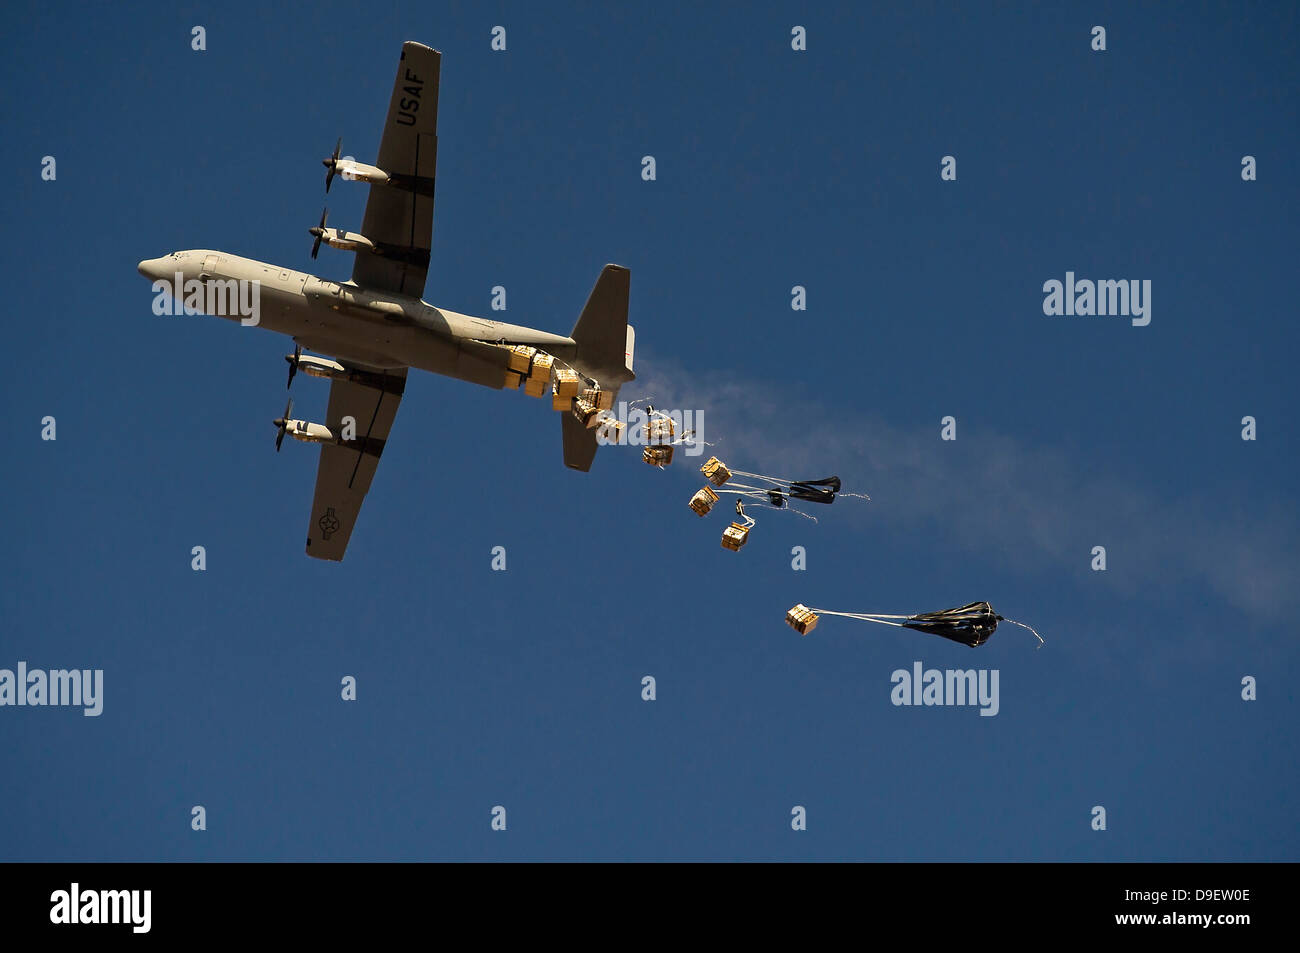 A U. S. Air Force C-130 Hercules airdrops 20 bundles over Afghanistan. - Stock Image